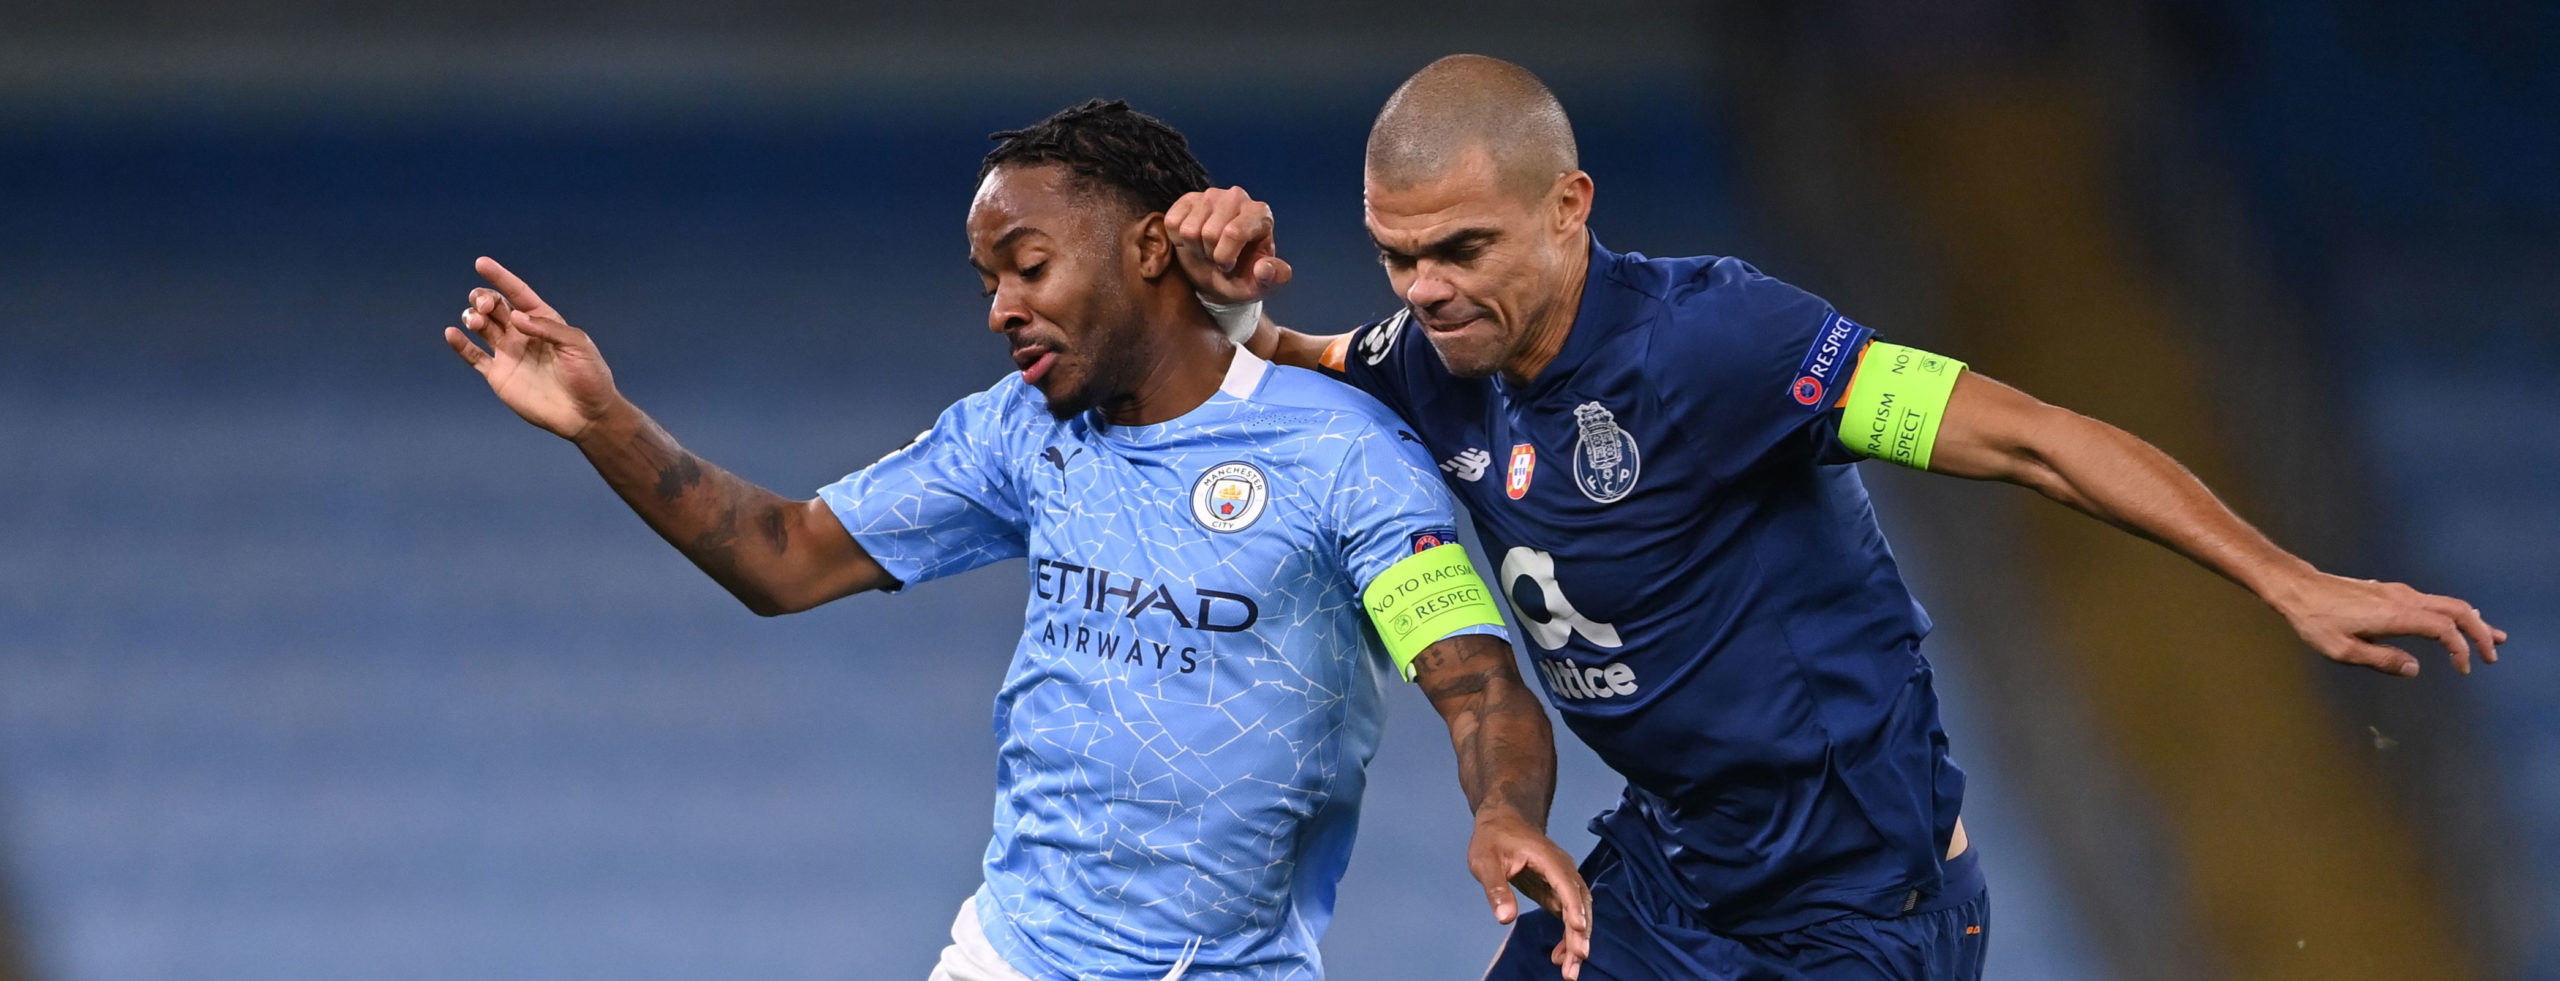 Porto vs Man City: Draw would suit both sides